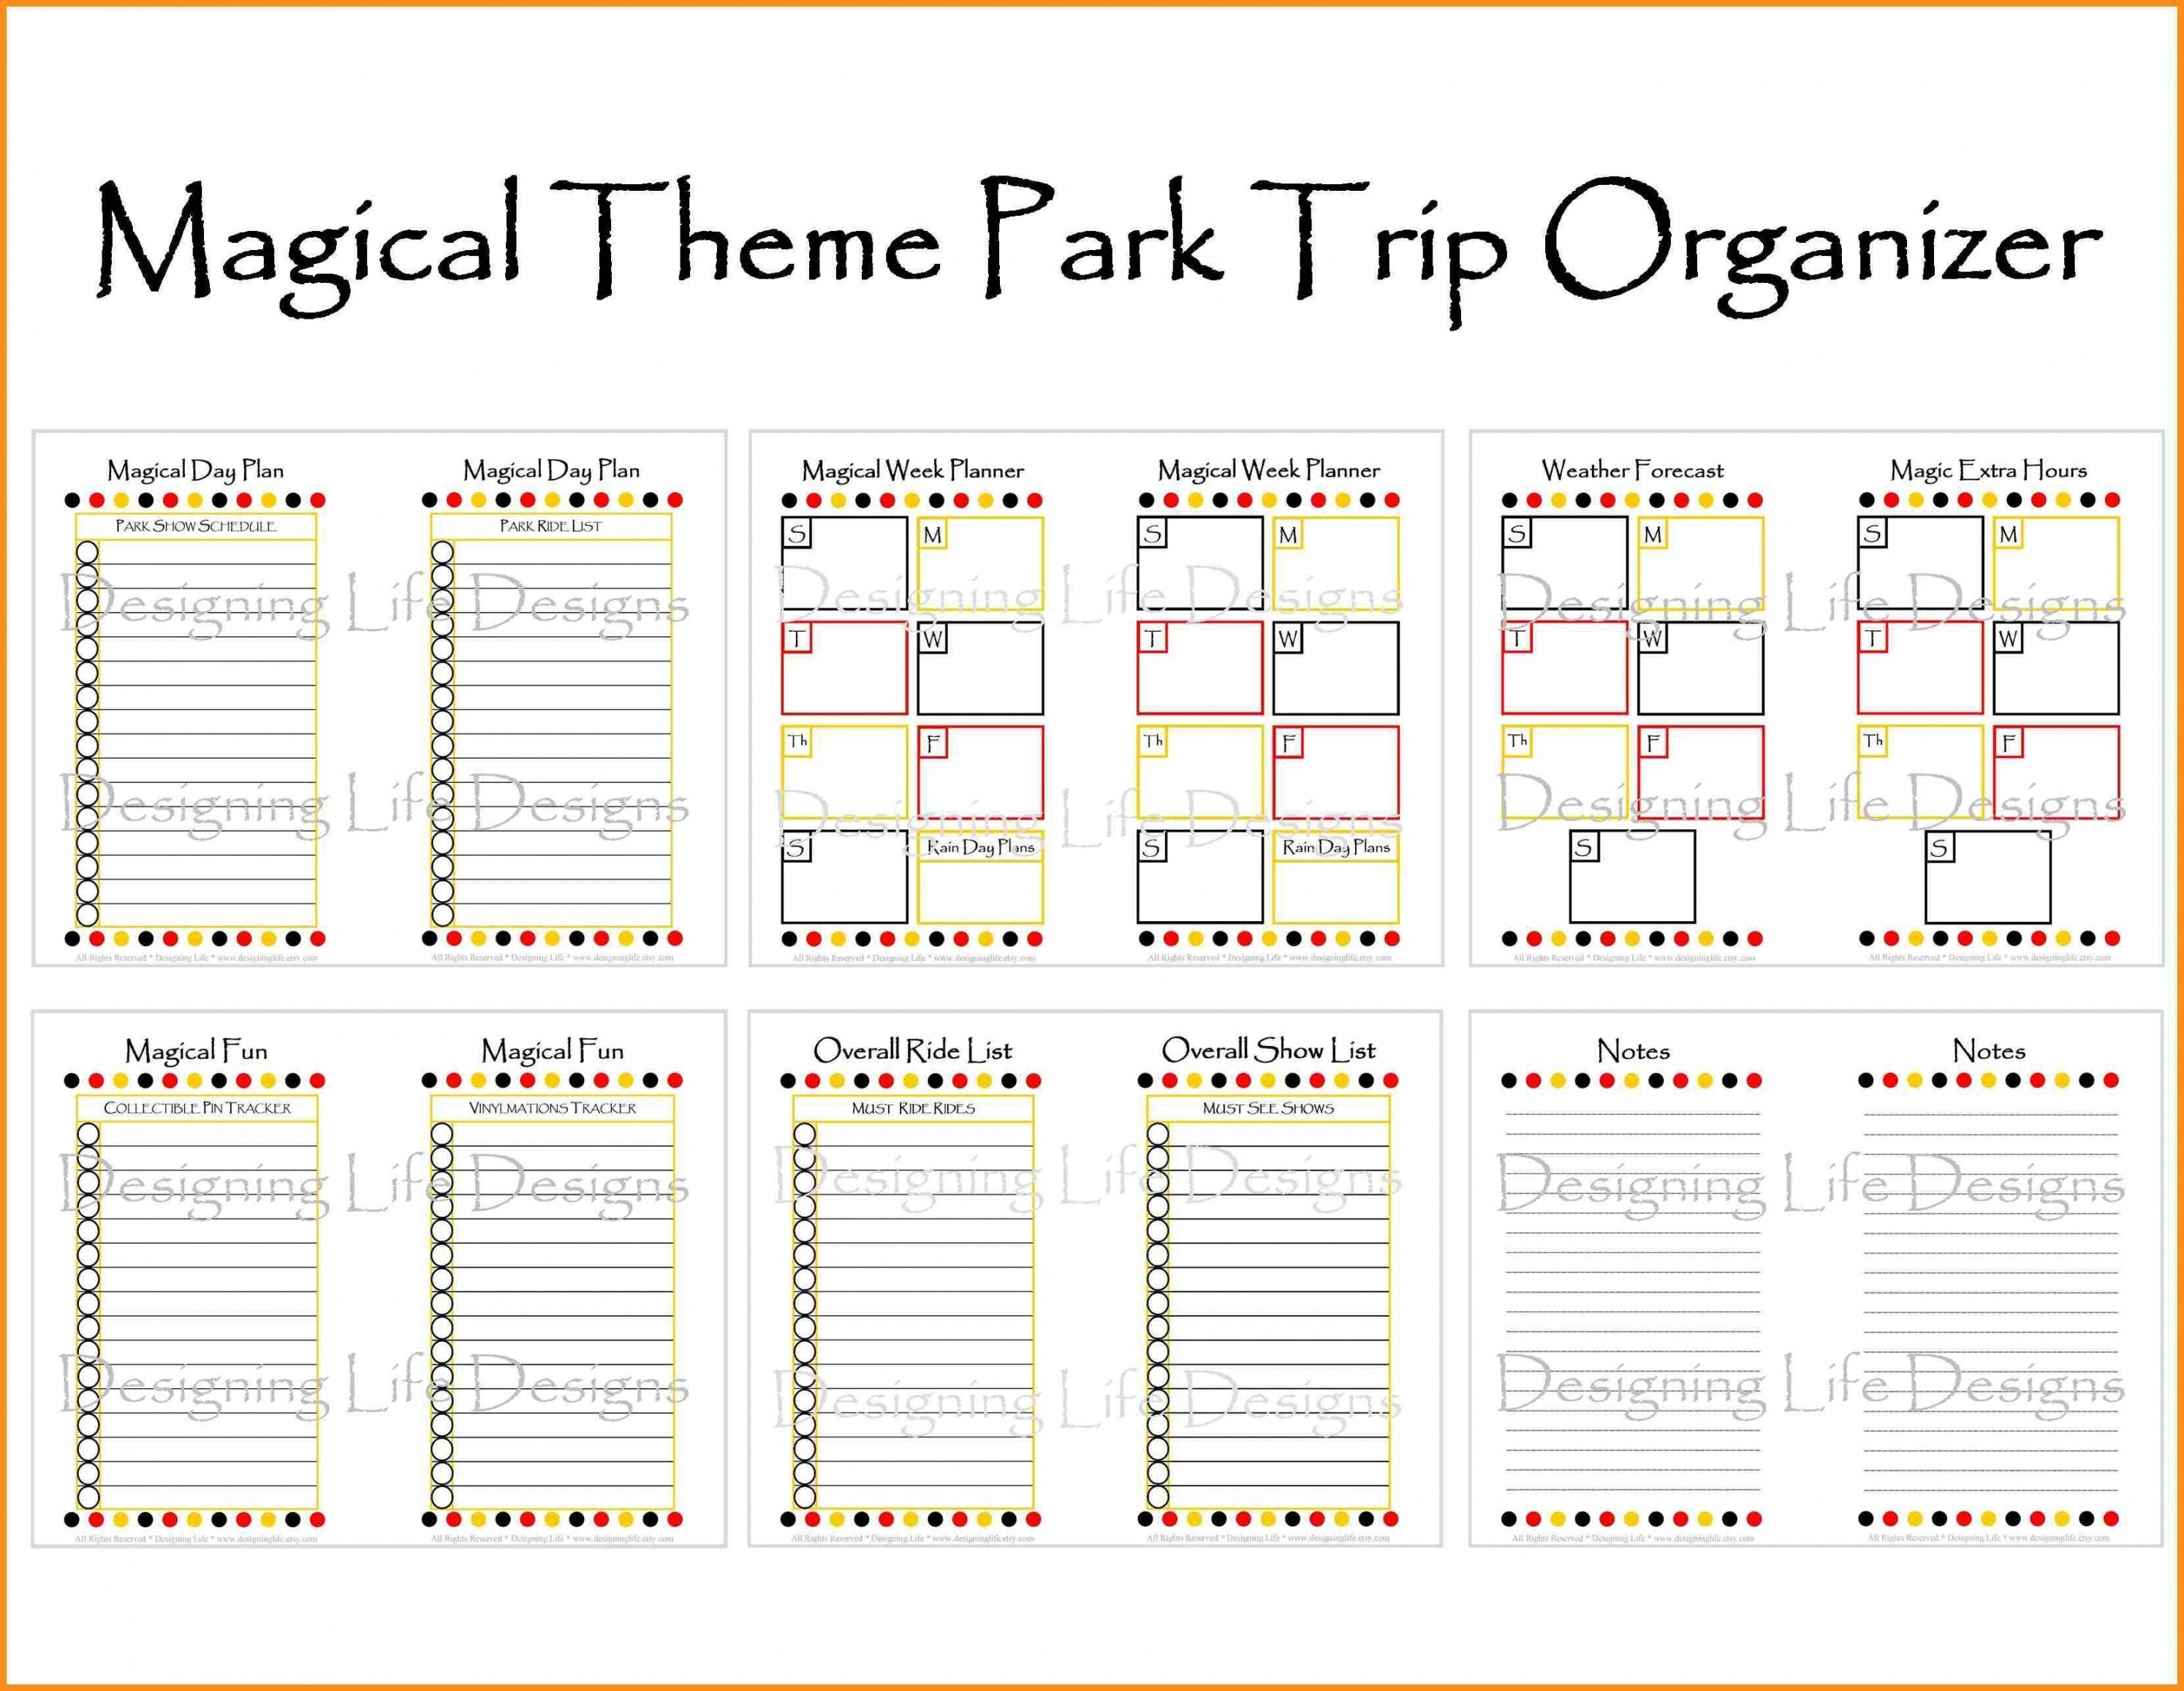 Image Result For Disney World Itinerary Template Disney Fun-Free Printable Disney Week Itinerary Template